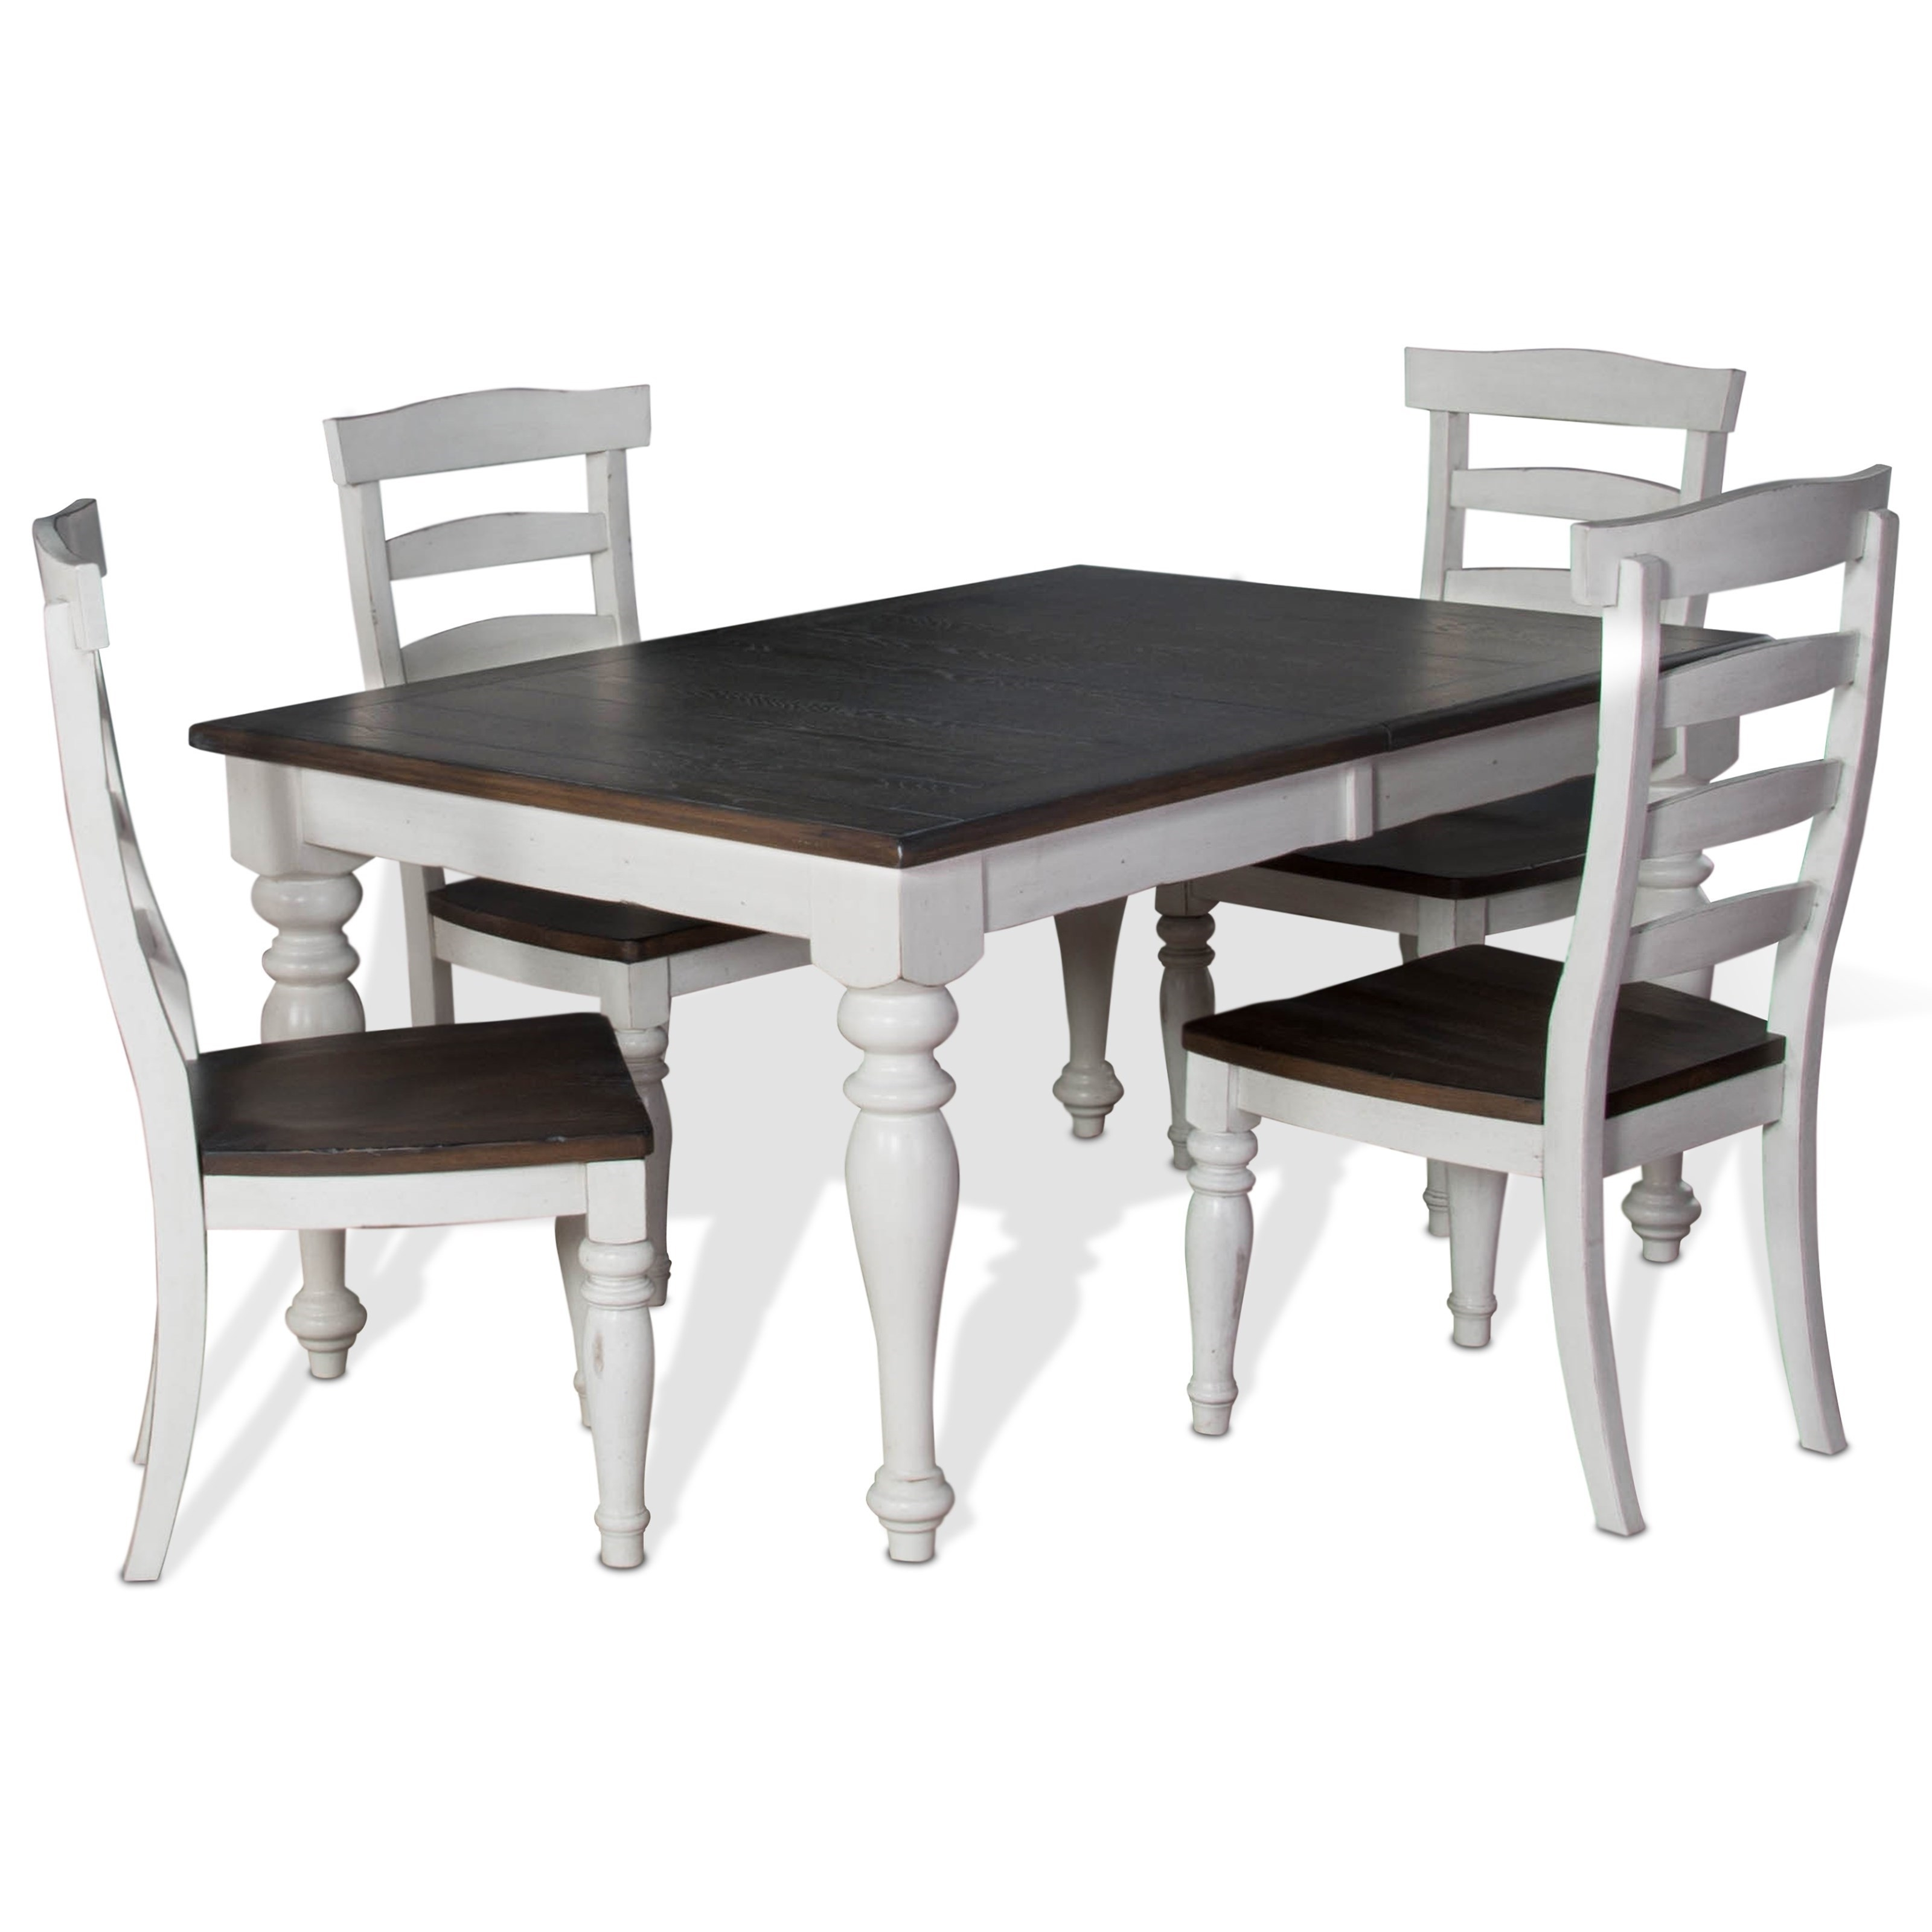 5 Piece Extension Dining Table Set With Ladderback Chairssunny Regarding Preferred Craftsman 7 Piece Rectangle Extension Dining Sets With Side Chairs (View 24 of 25)